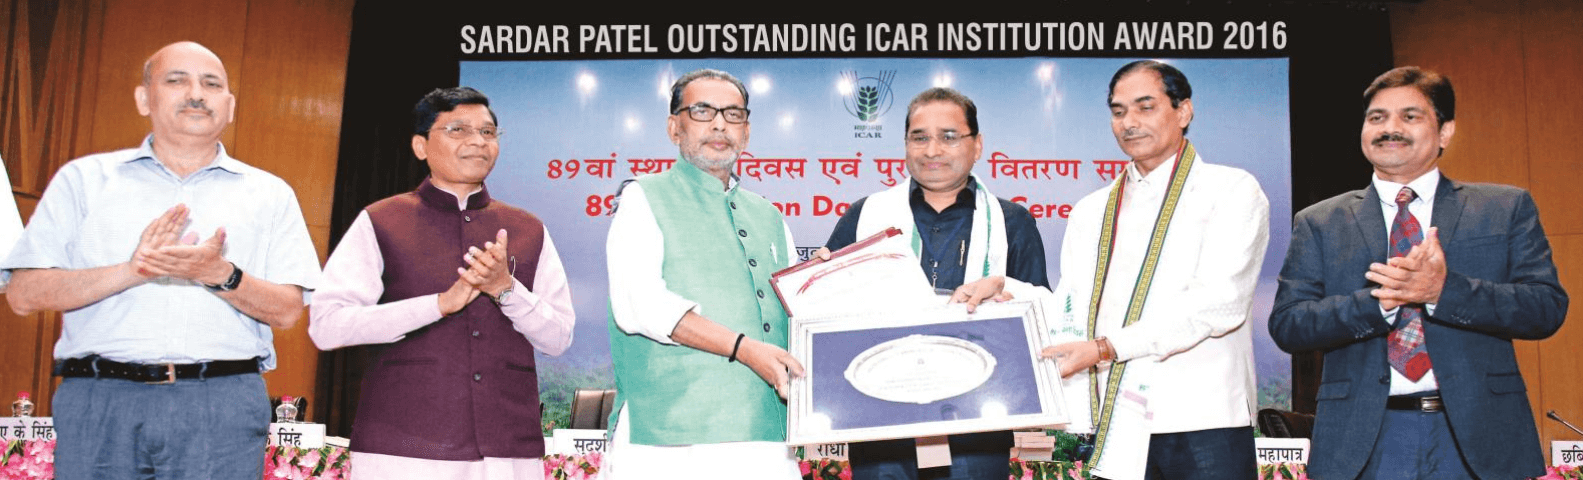 Sardar Patel Outstanding ICAR Institution Award 2016-17